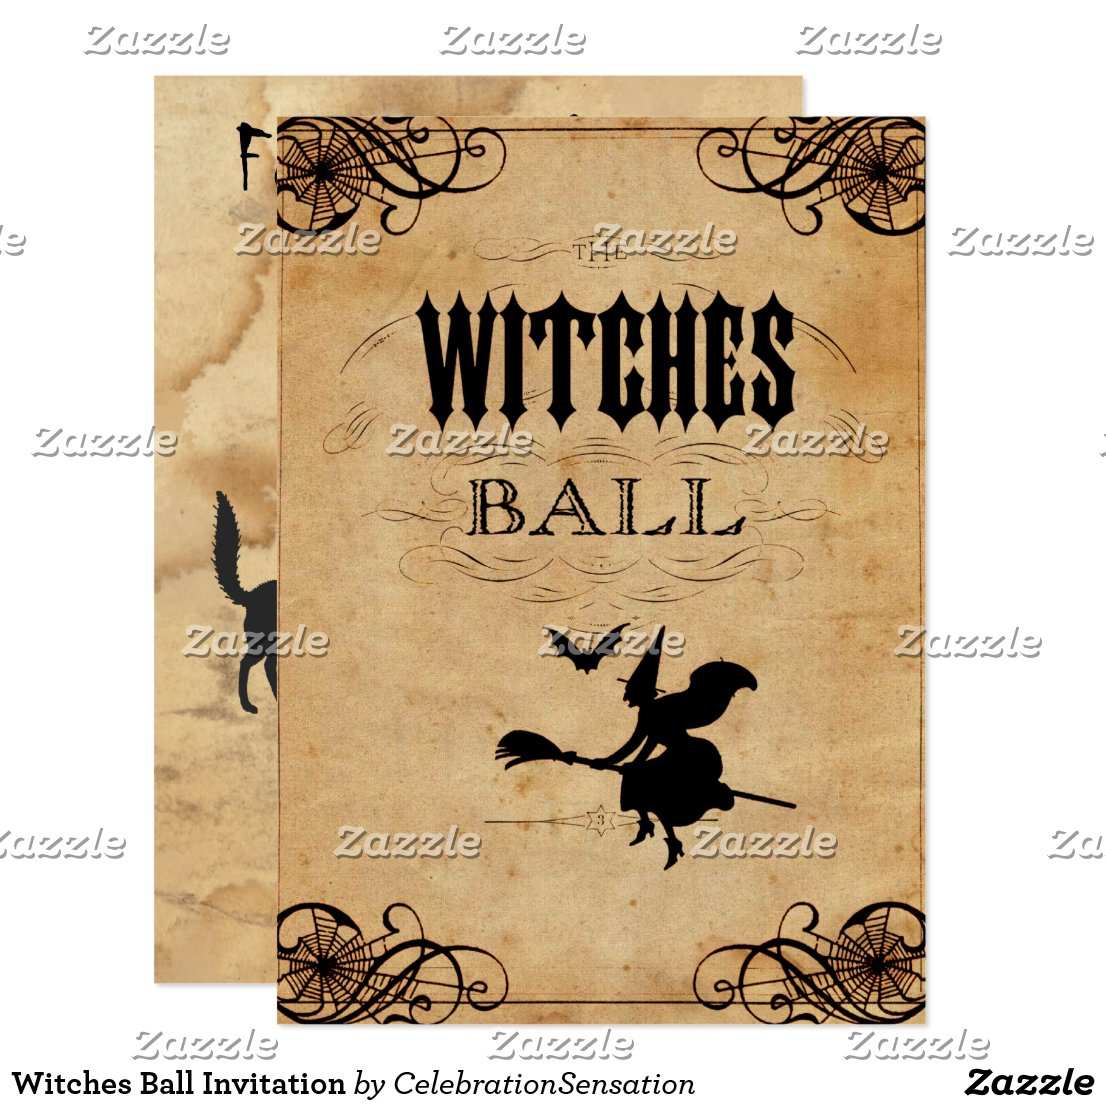 Witches Ball Invitation